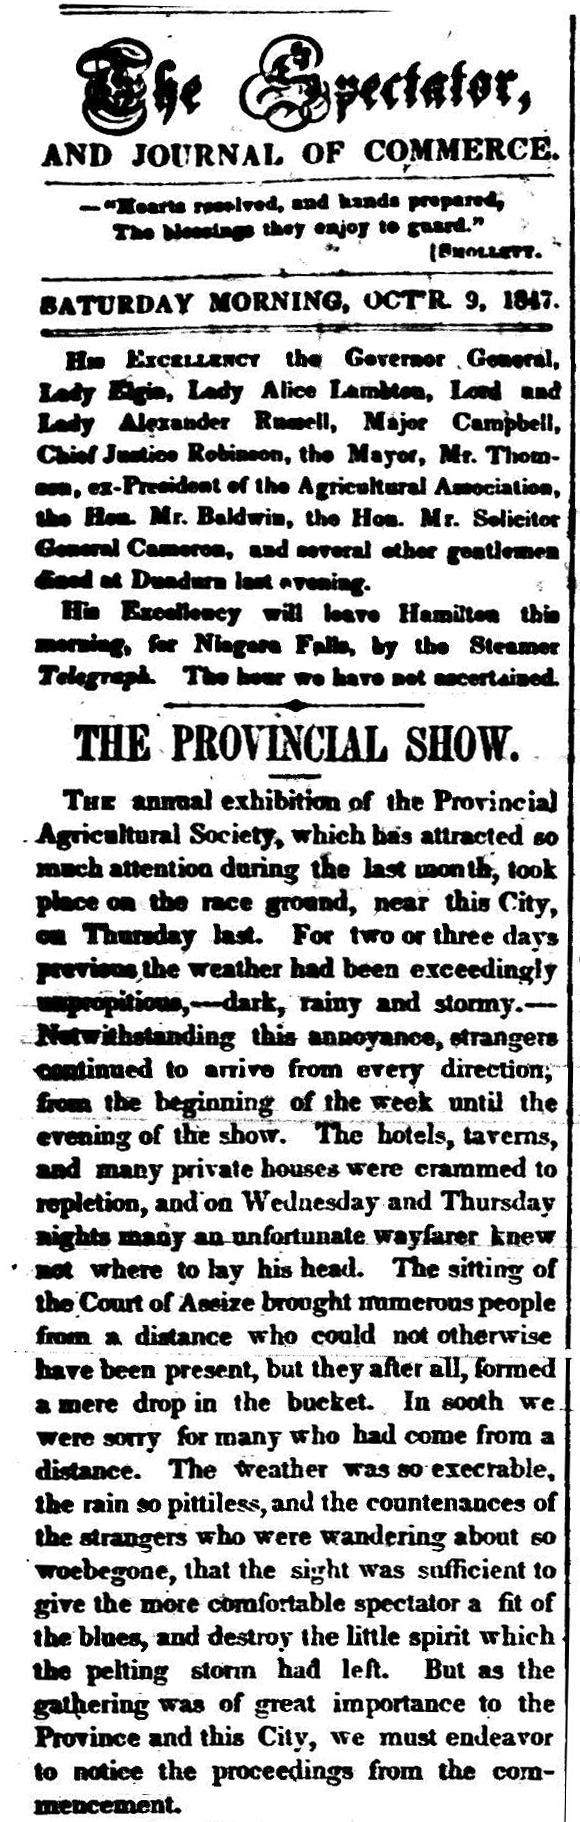 A newspaper clipping from 1847 describing opening of the Provincial Agricultural Fair in Hamilton, Ontario.